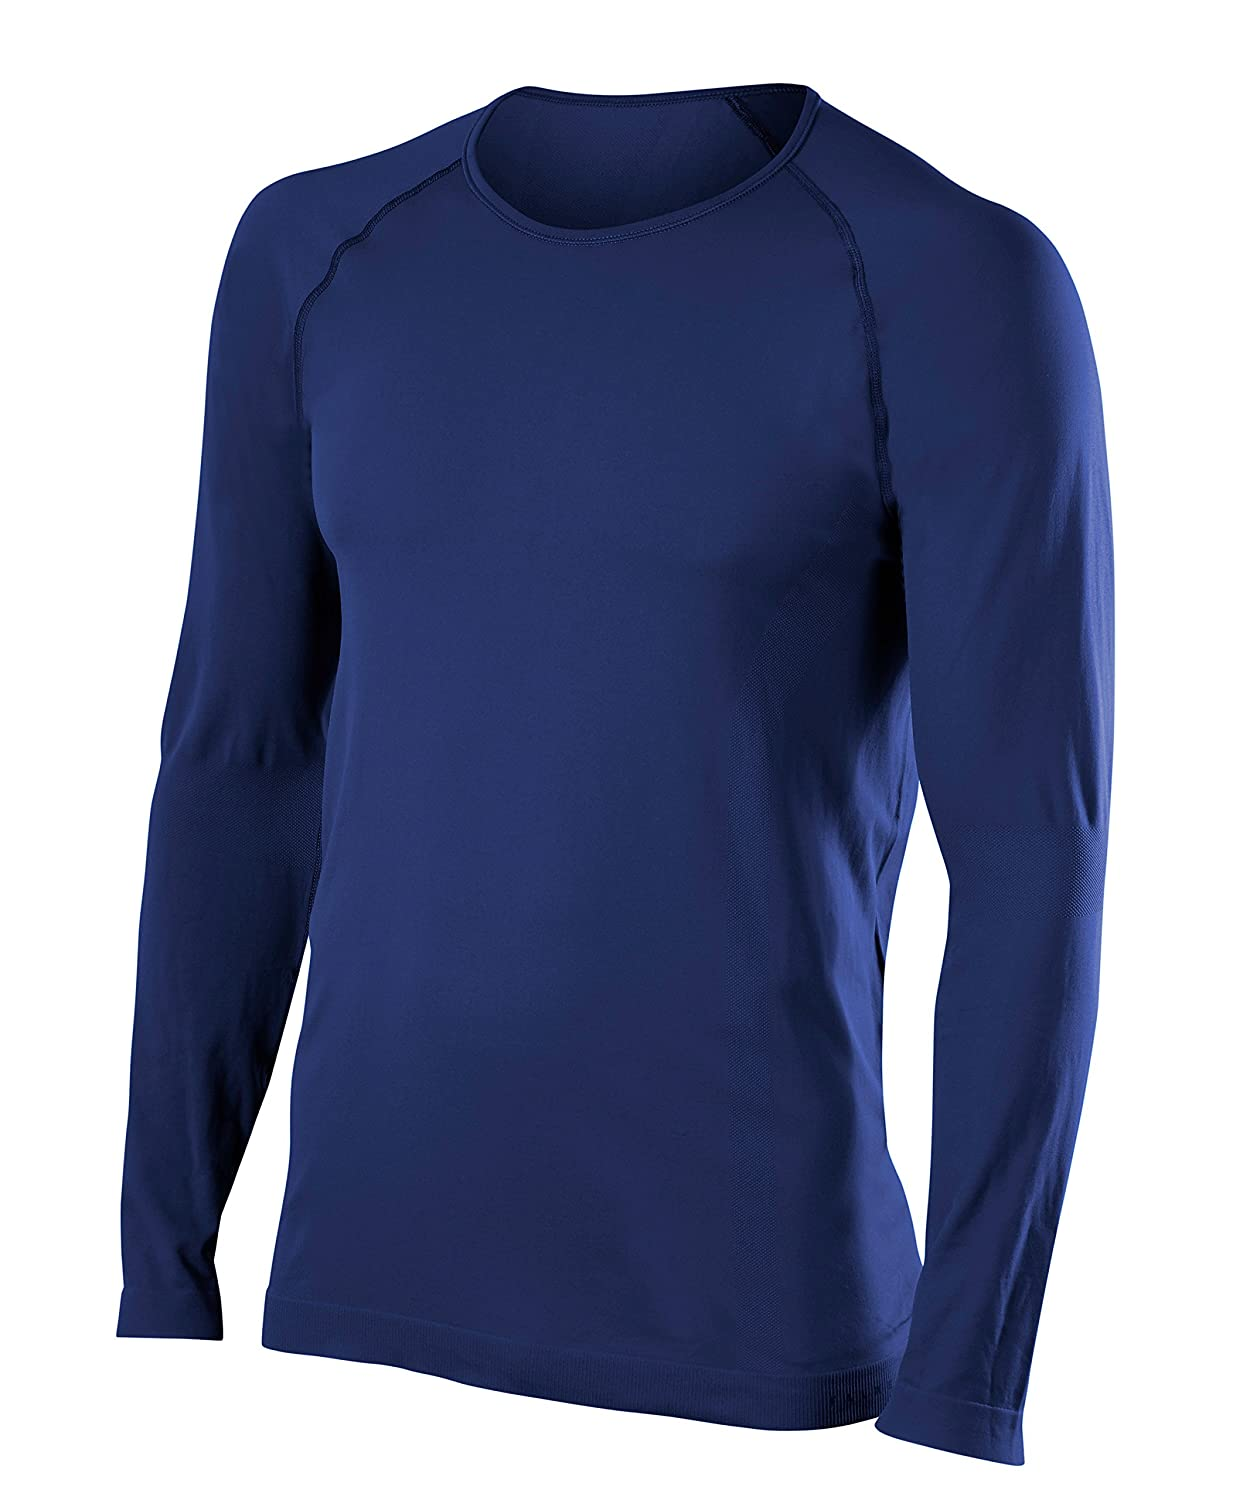 FALKE Herren Warm Longsleeved Shirt Comfort Fit Men Sportunterwäsche